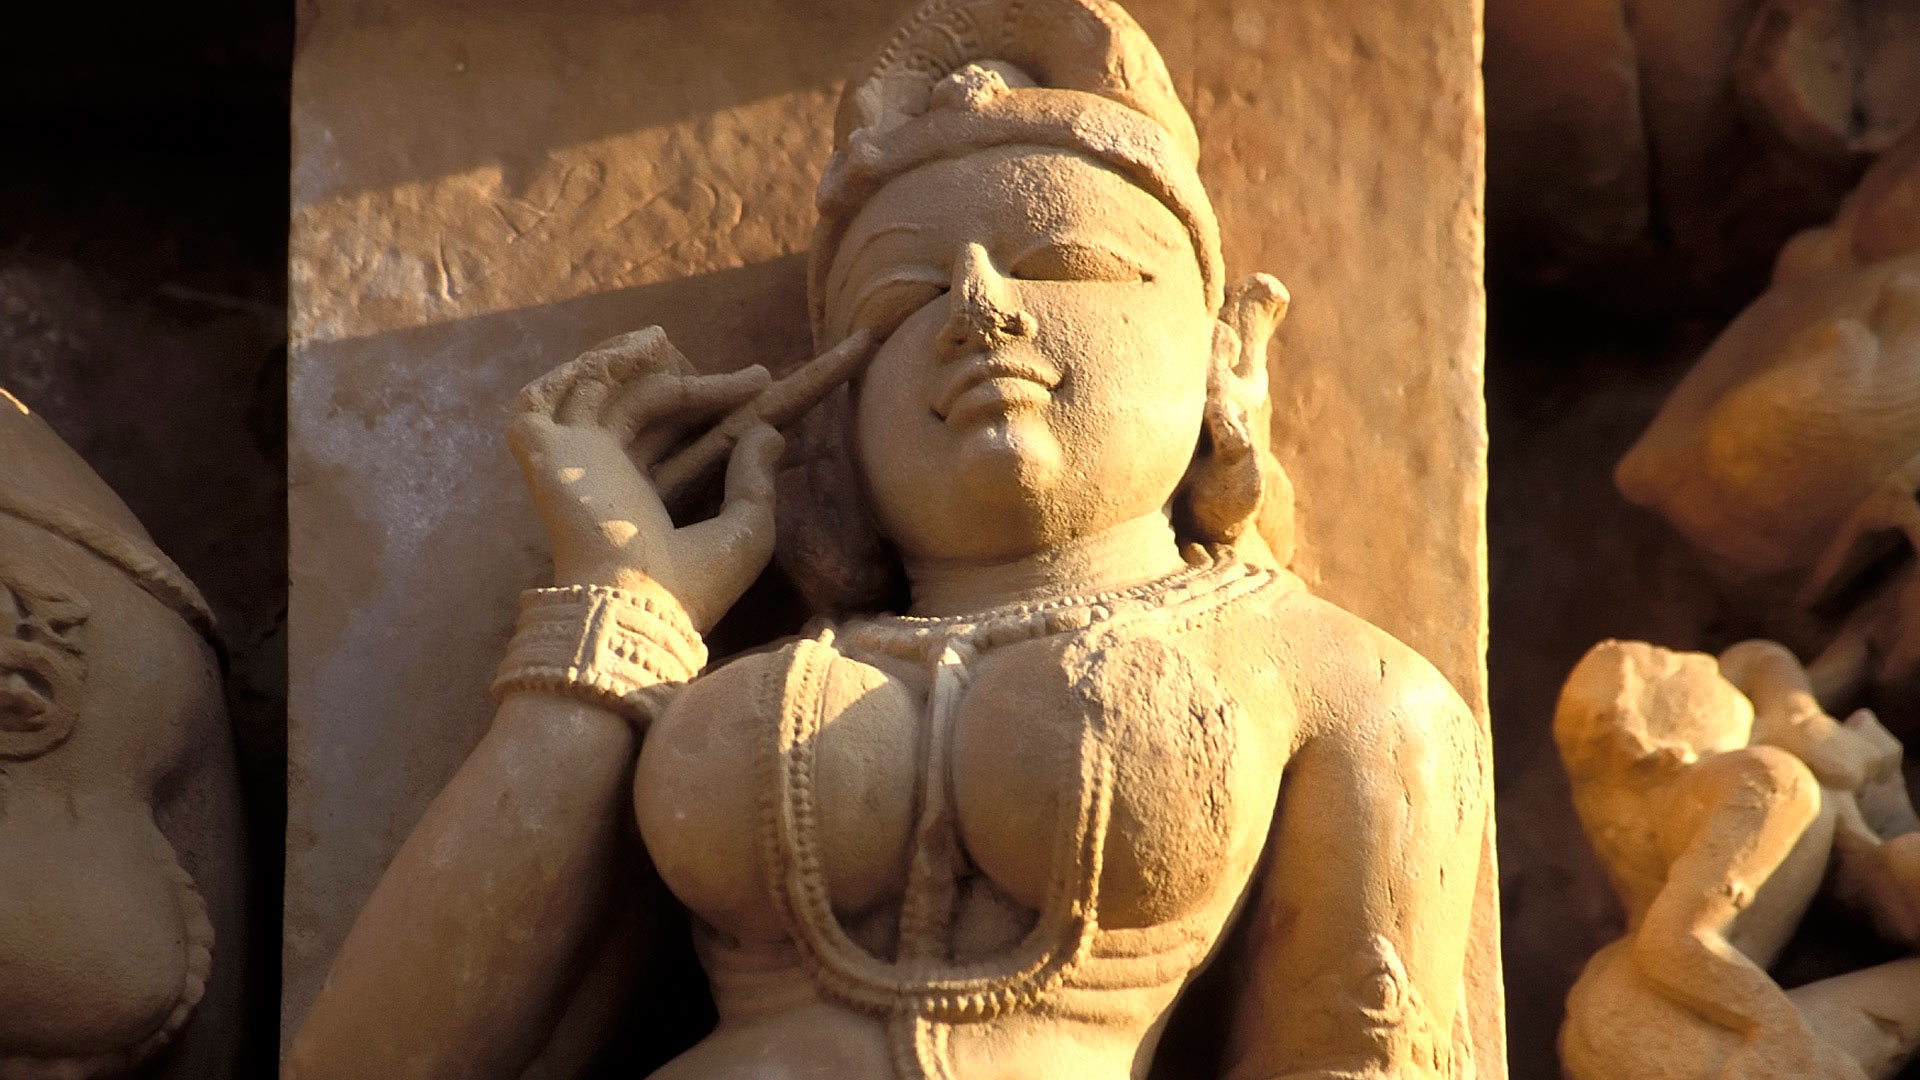 Apsara applying collyrium at the Parsvanath Temple located in the Eastern group of the Khajuraho Group of Monuments, Madhya Pradesh, India